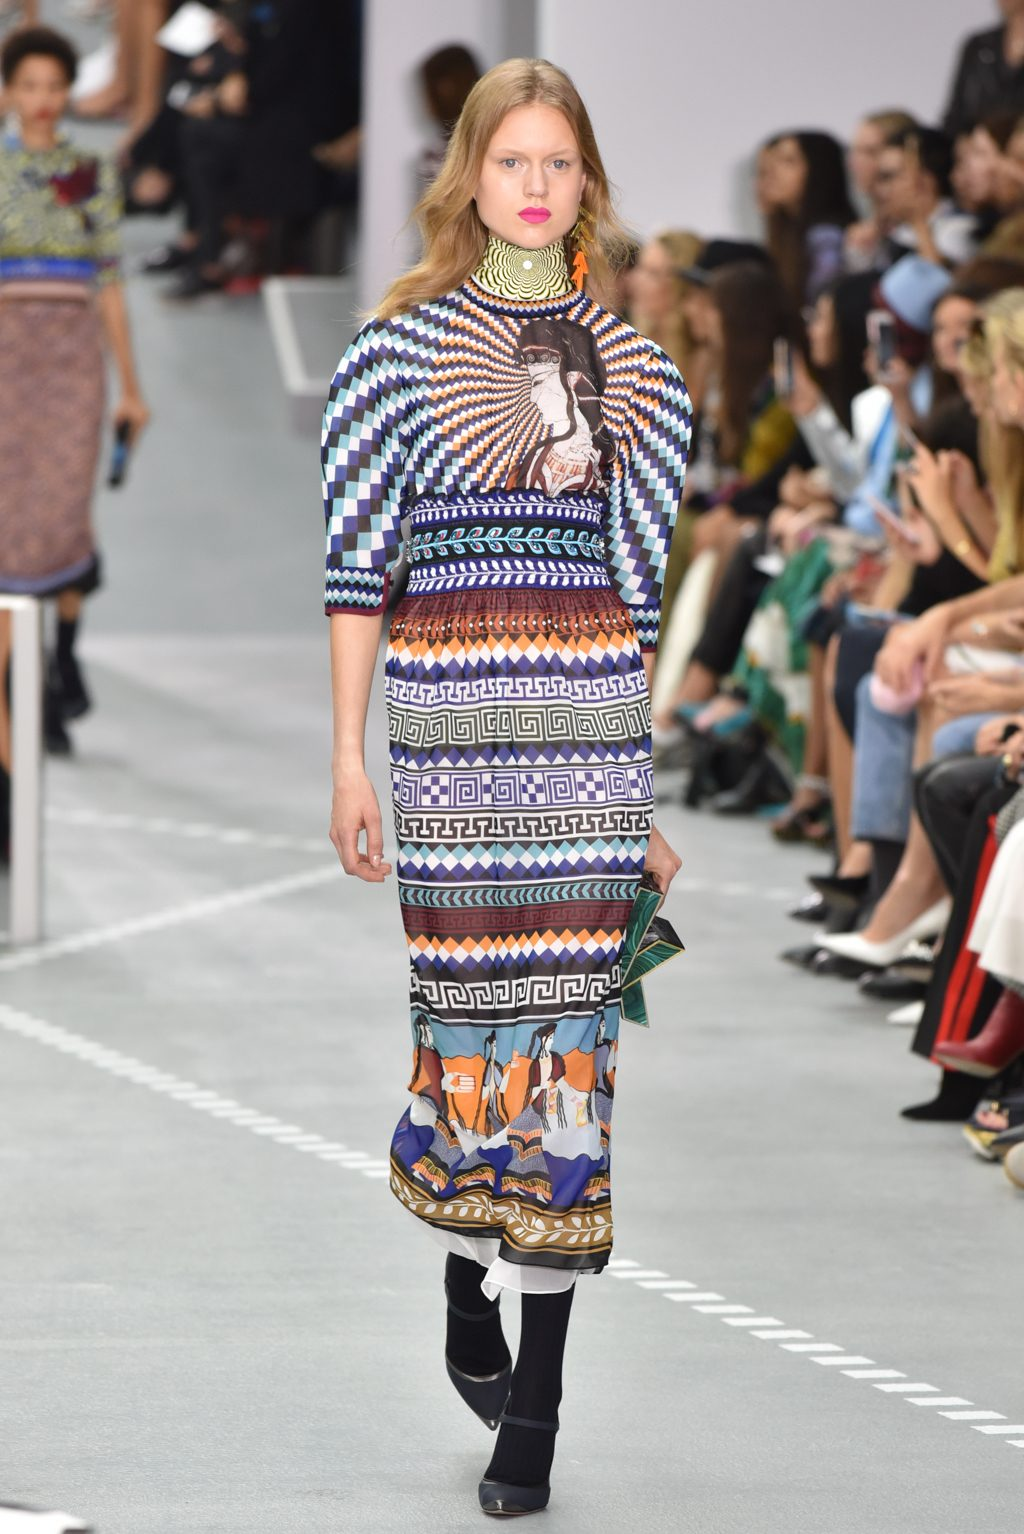 LFW-SS17-Mary-Katrantzou-Krisztian-Pinter-the-upcoming-12-1024x1534